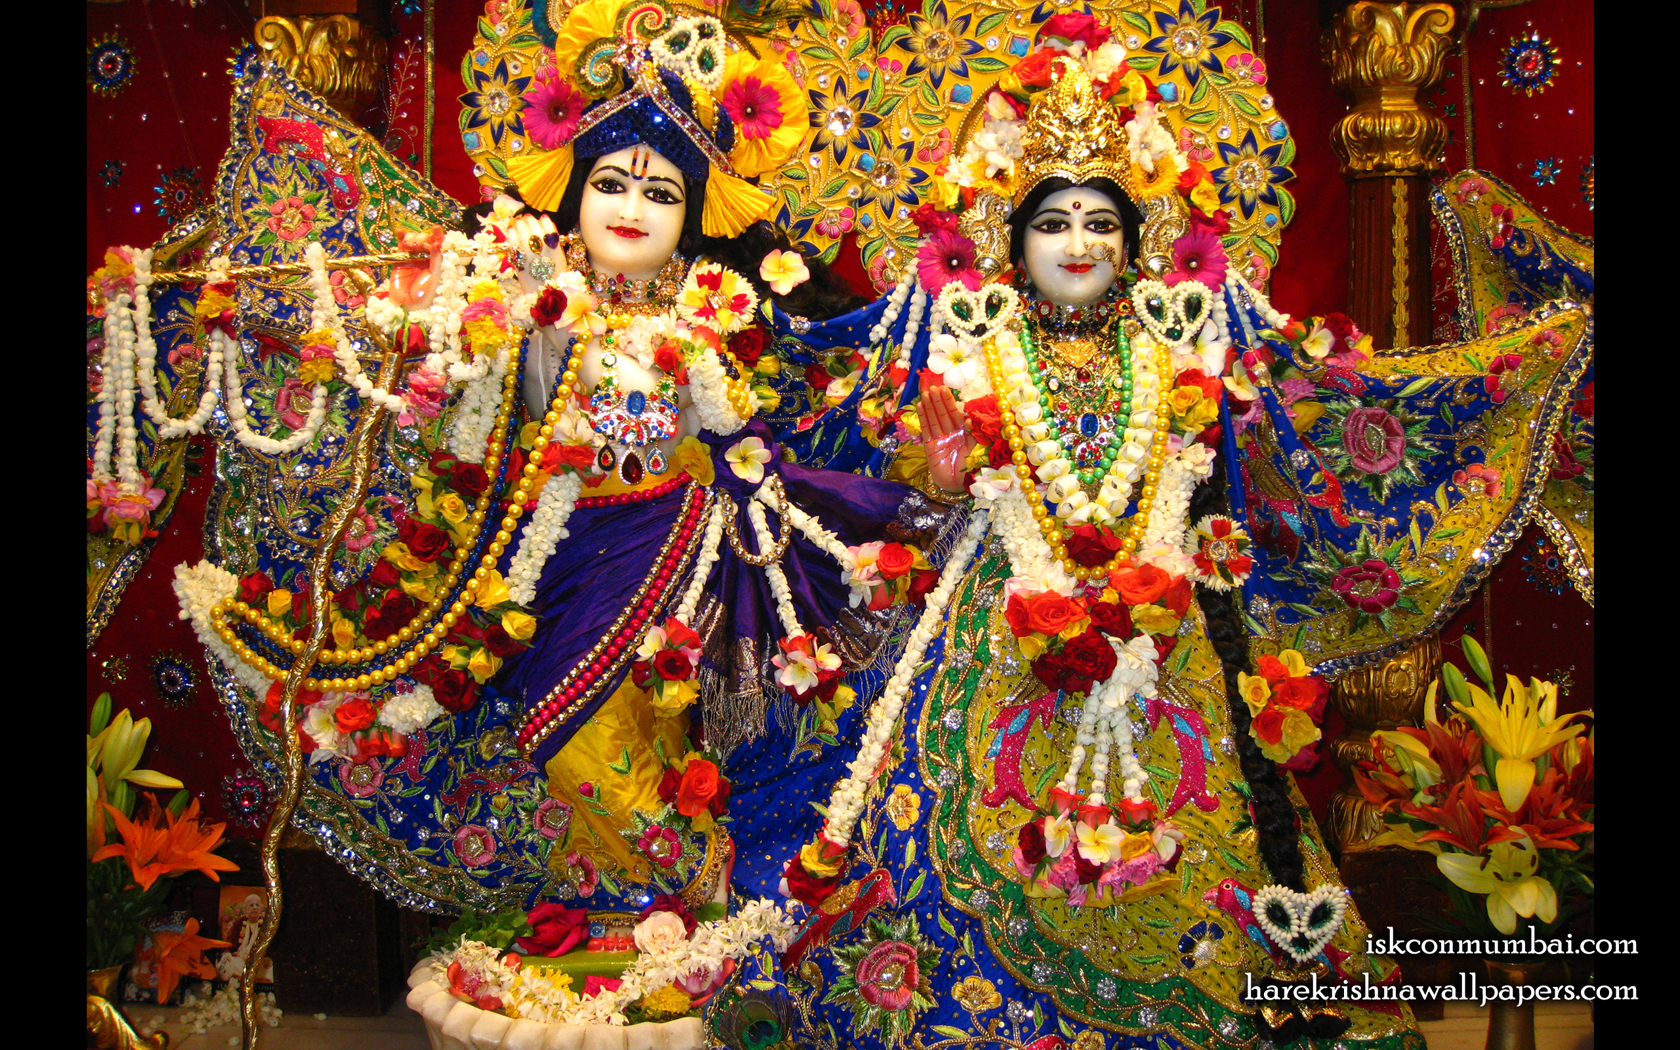 Sri Sri Radha Rasabihari Wallpaper (006) Size 1680x1050 Download